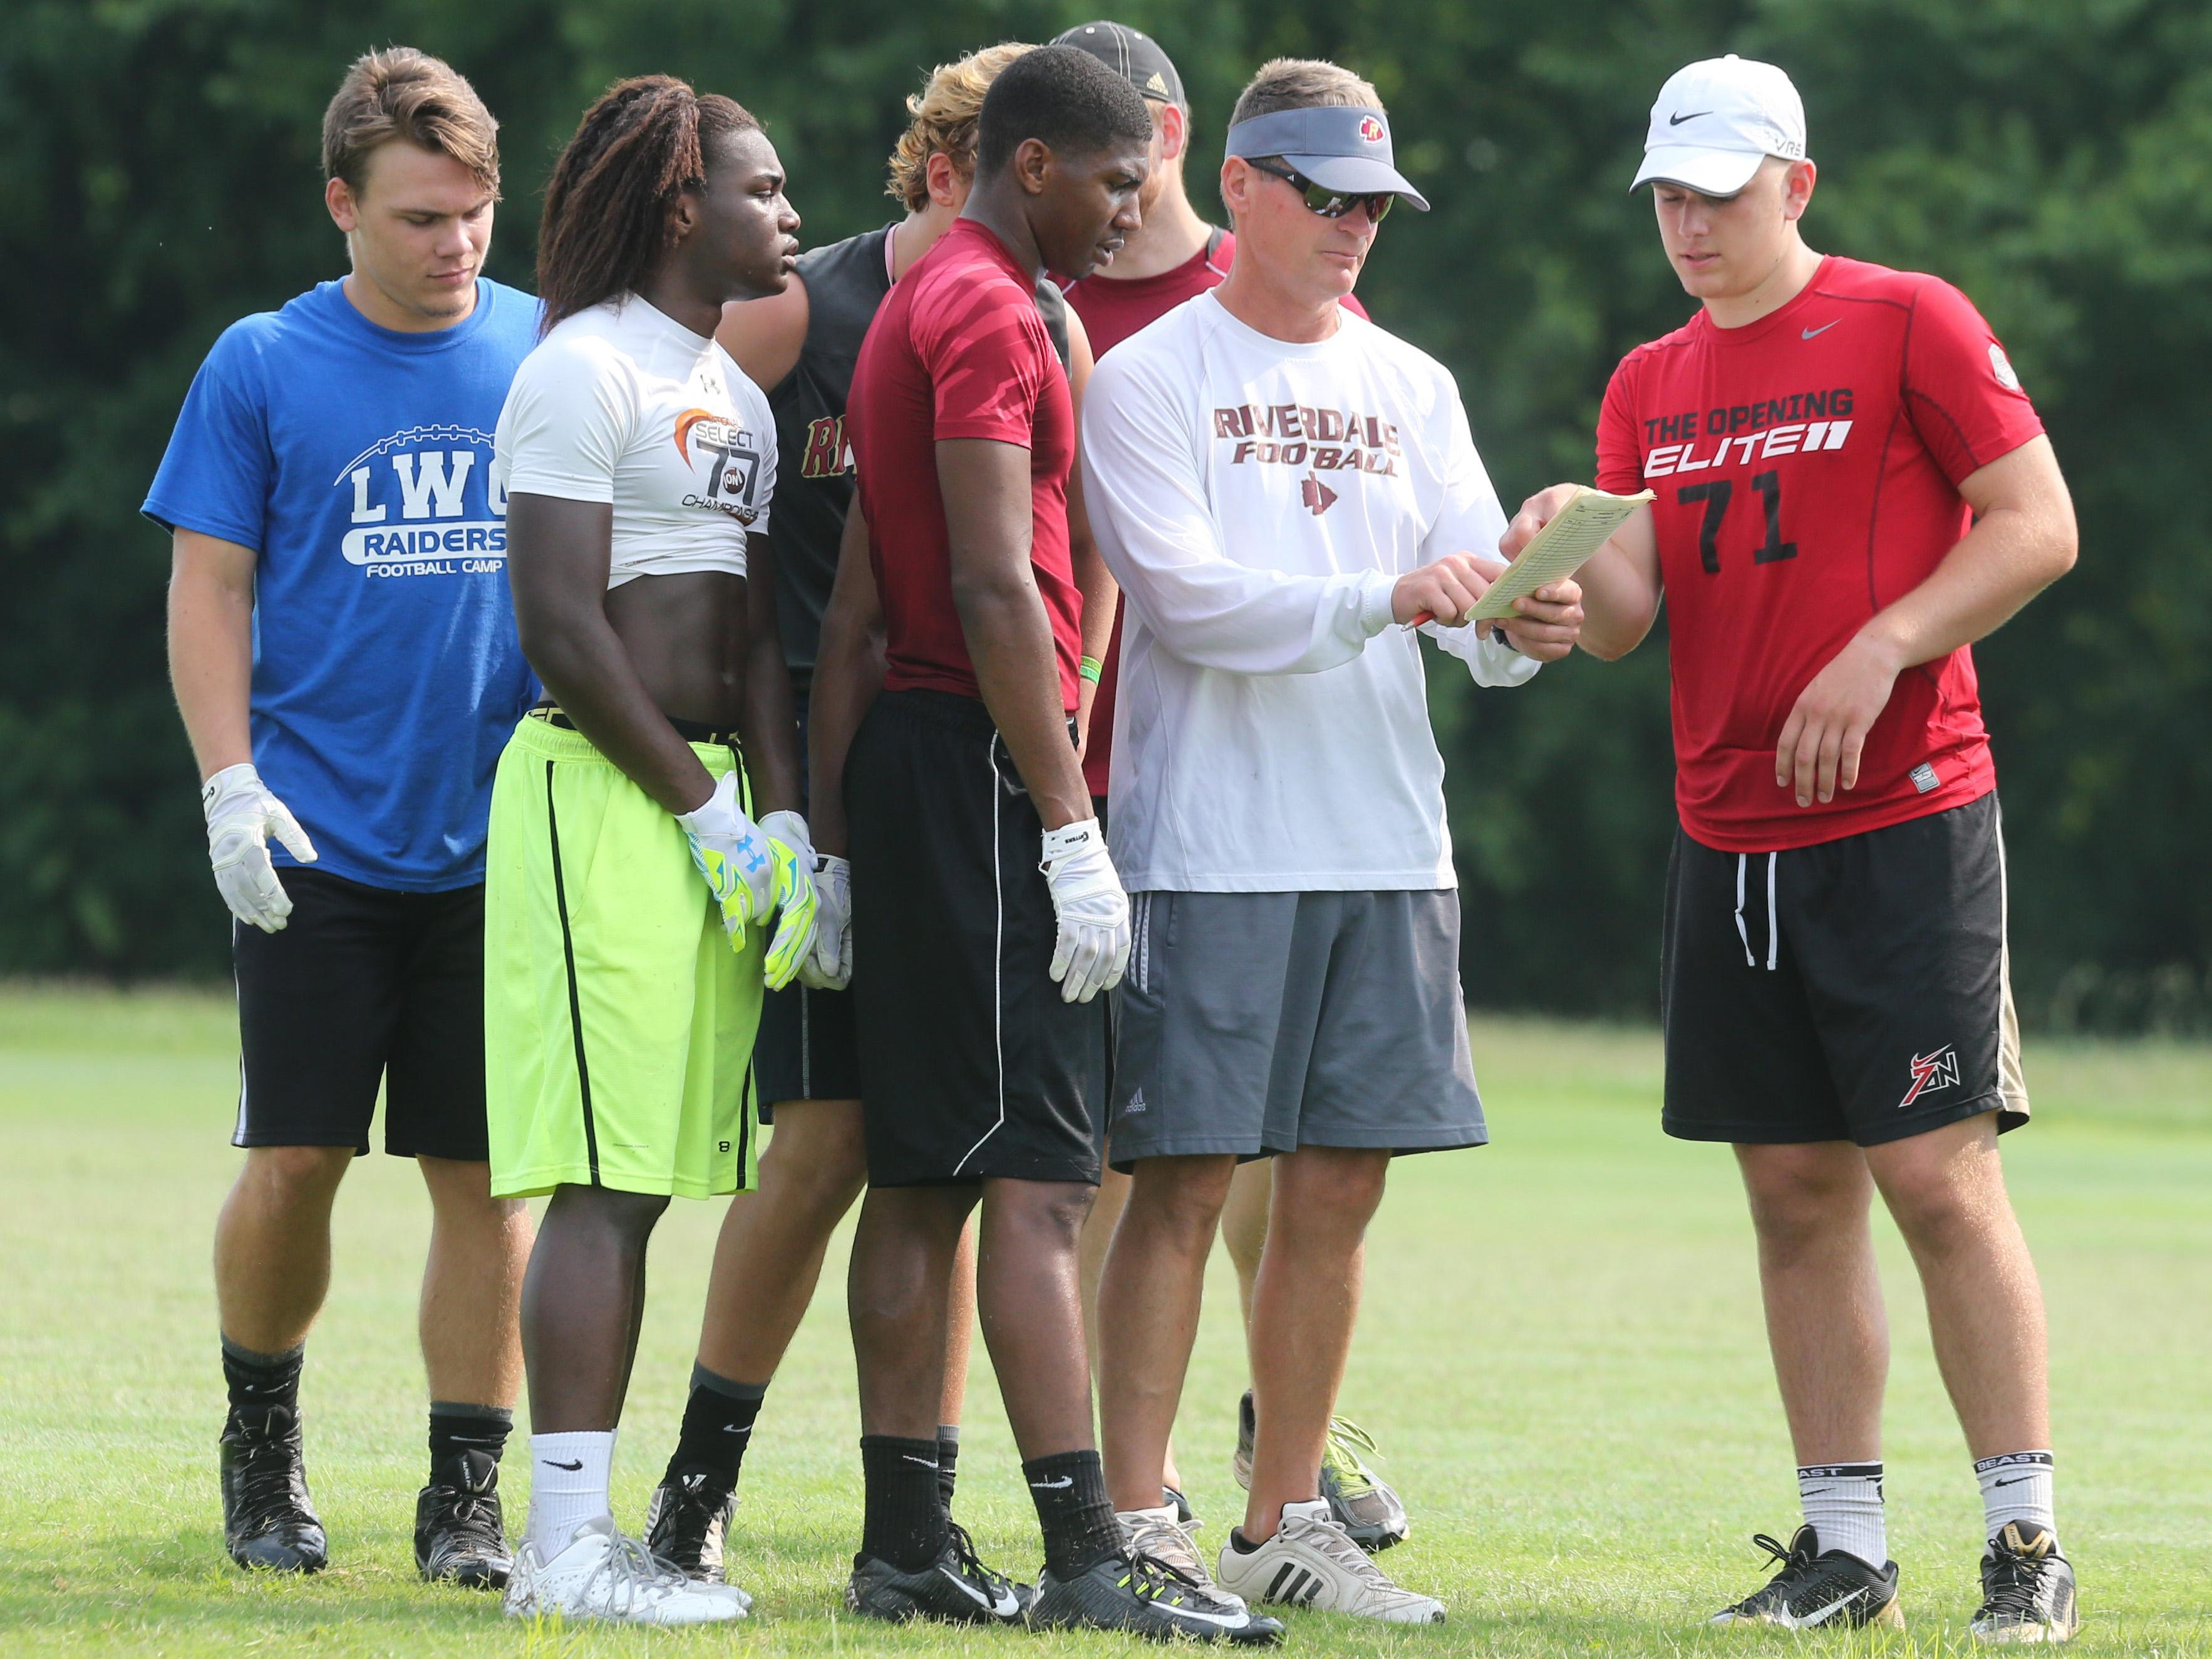 Riverdale football coach Ron Aydelott goes over an offensive play during a 7-on-7 practice Monday.